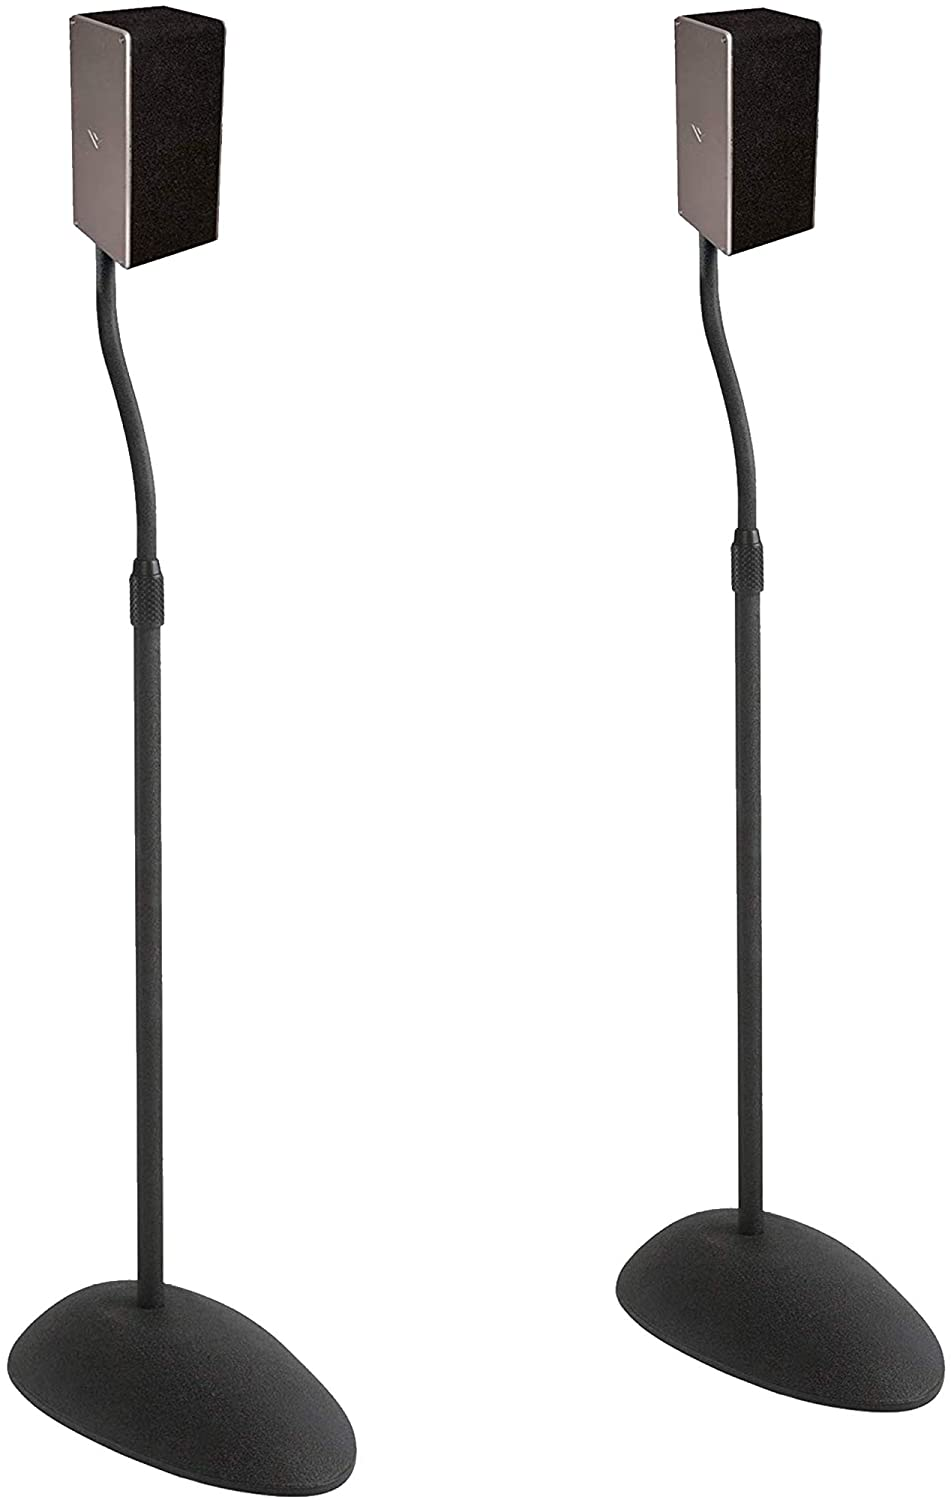 ECHOGEAR Bombing Selling and selling free shipping Adjustable Height Speaker - Compatibil Stands Universal